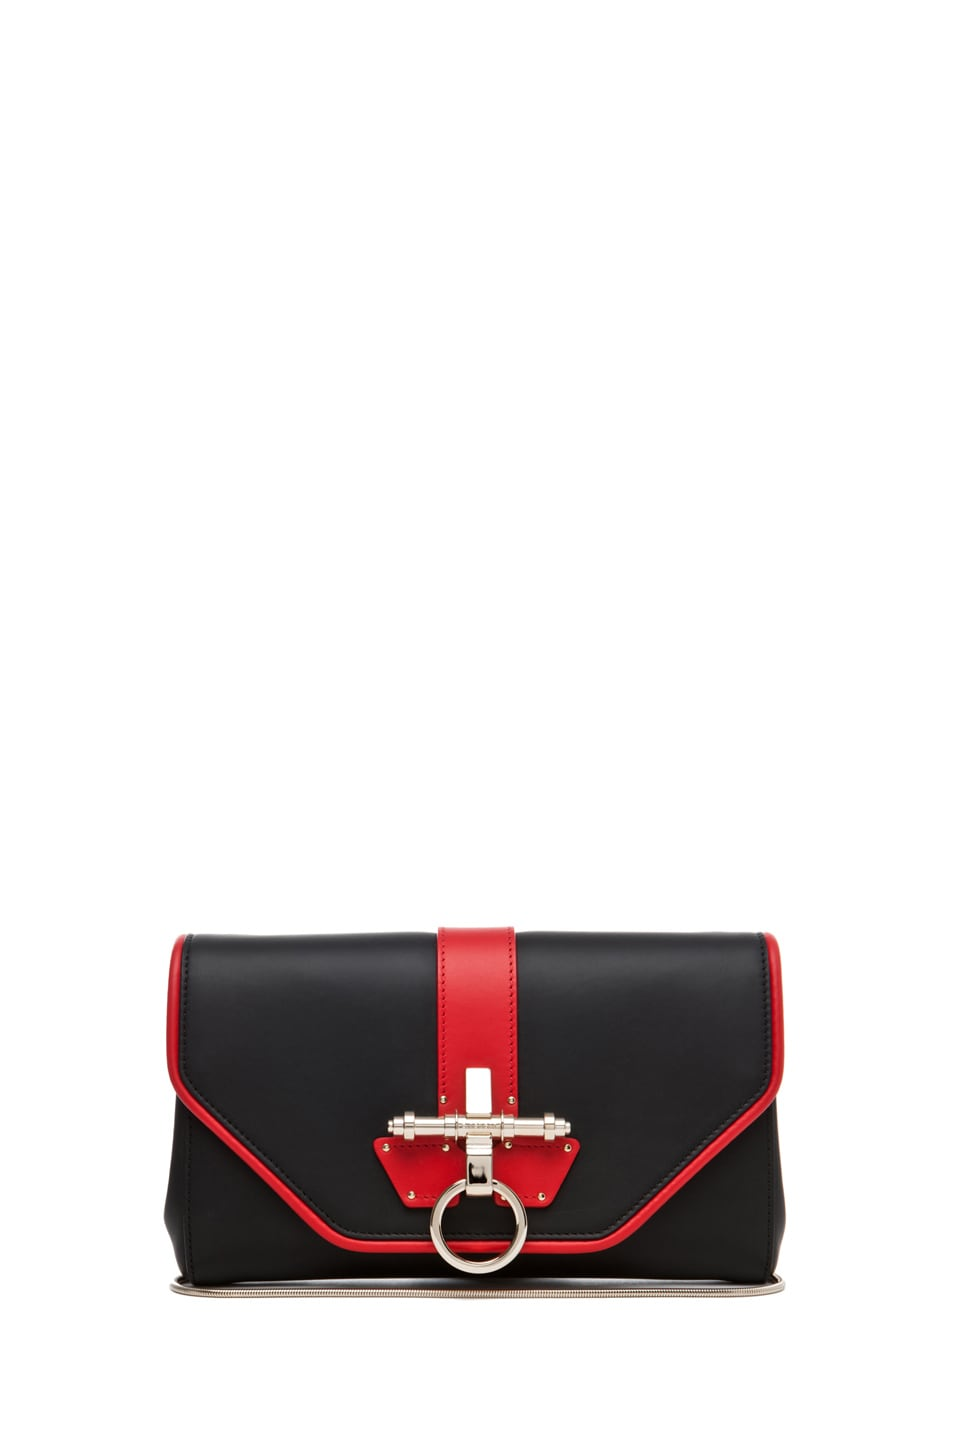 Image 1 of GIVENCHY Obsedia Clutch in Black